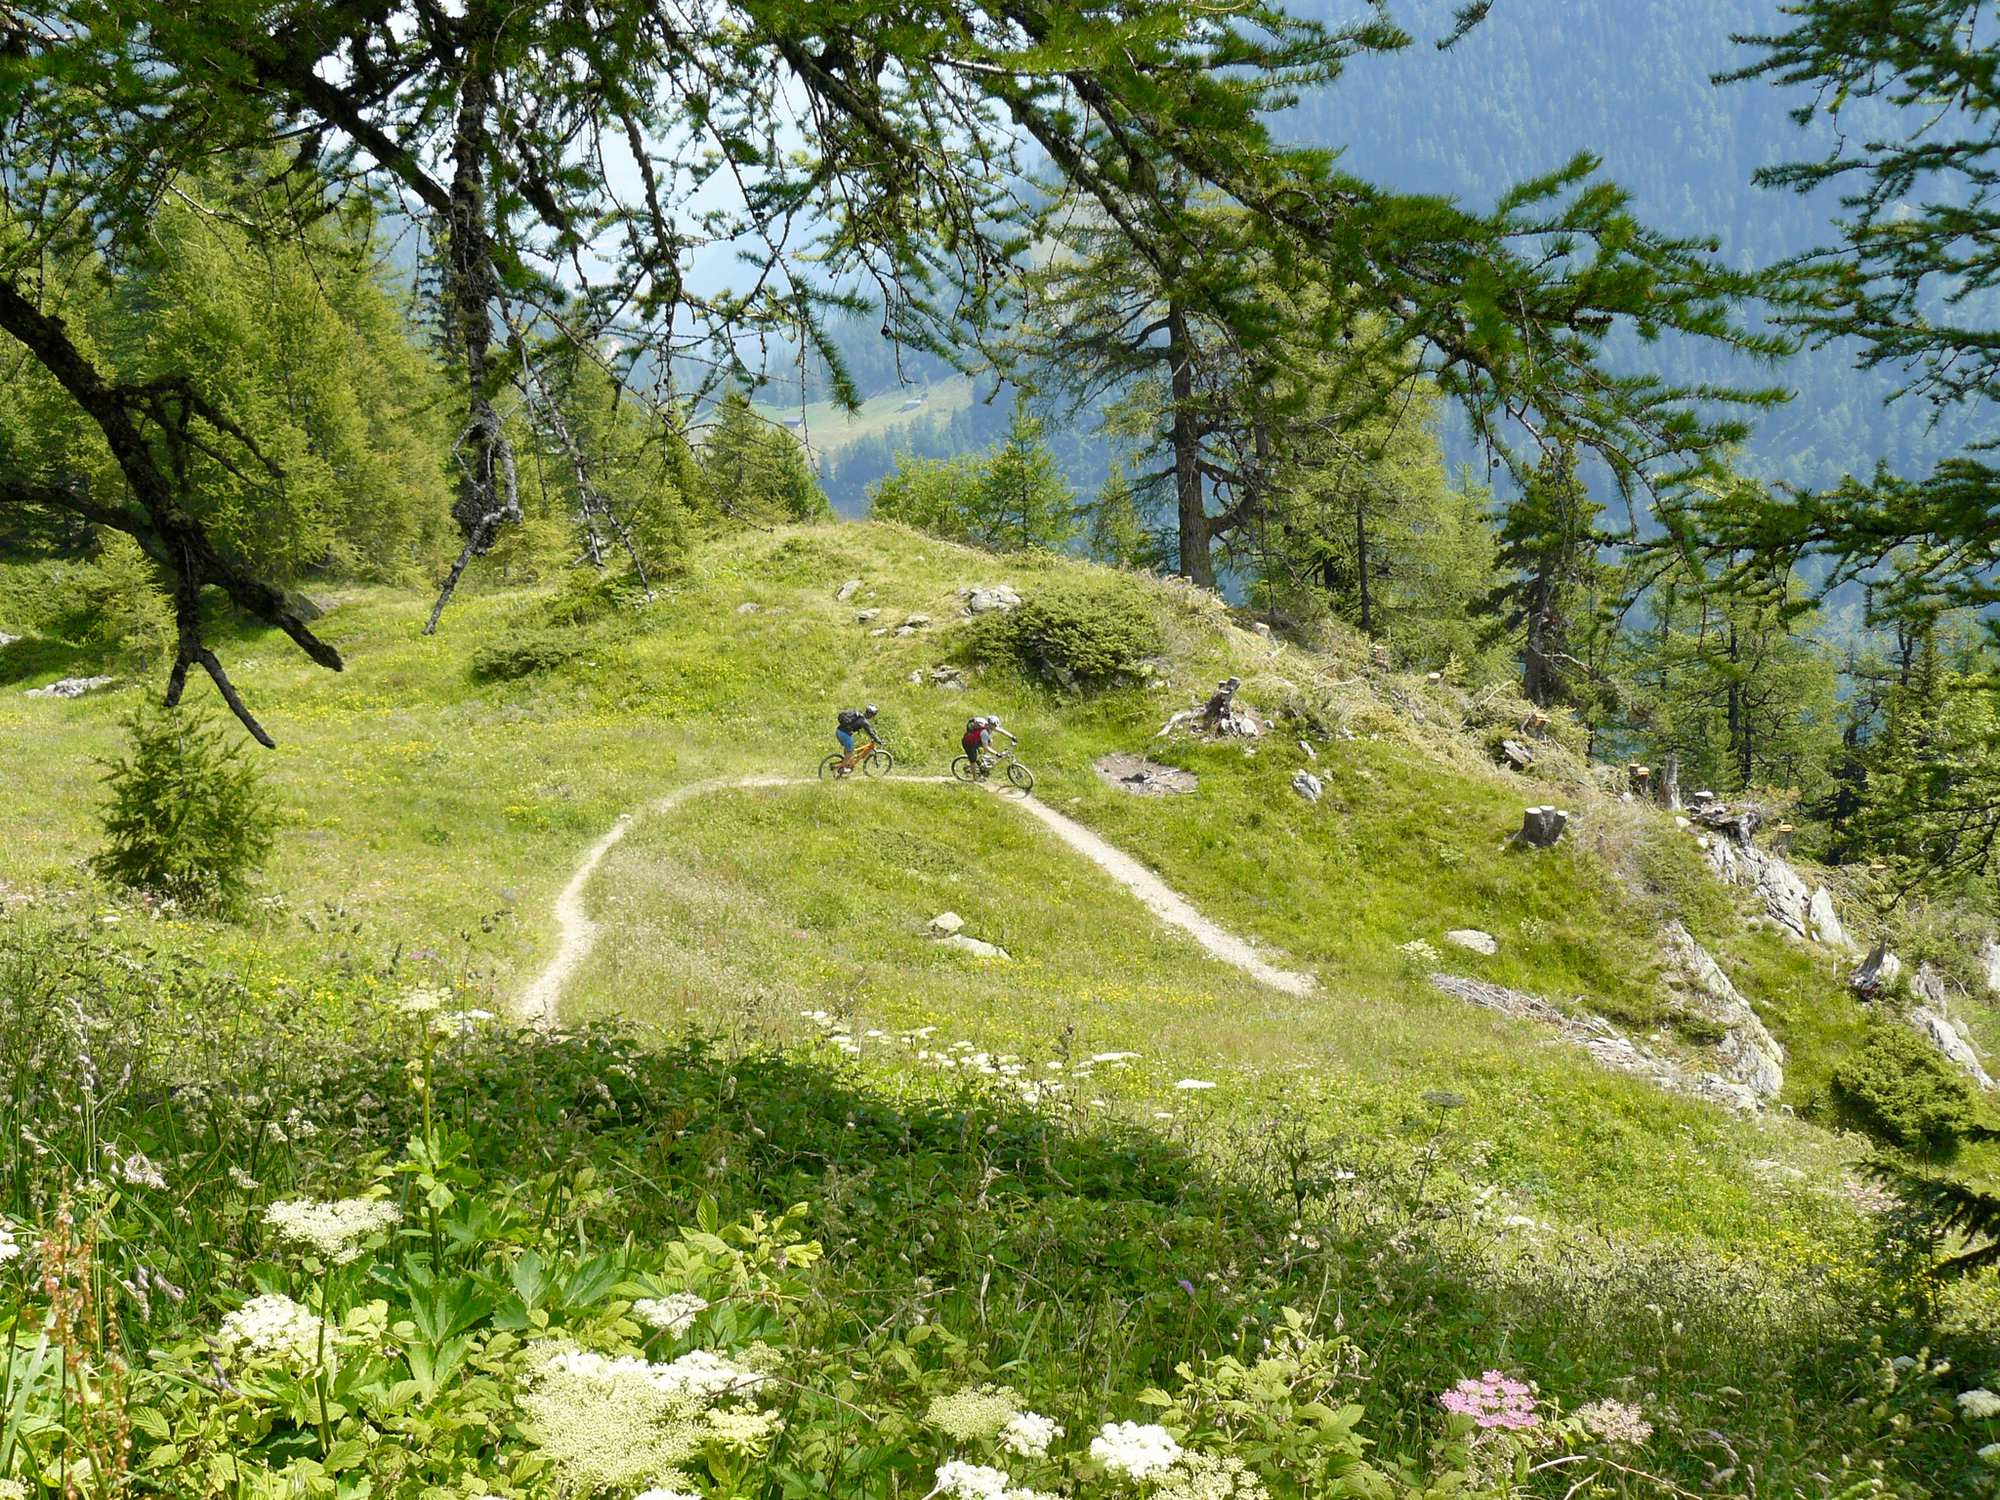 Up & down – mountain passes and singletracks for experts